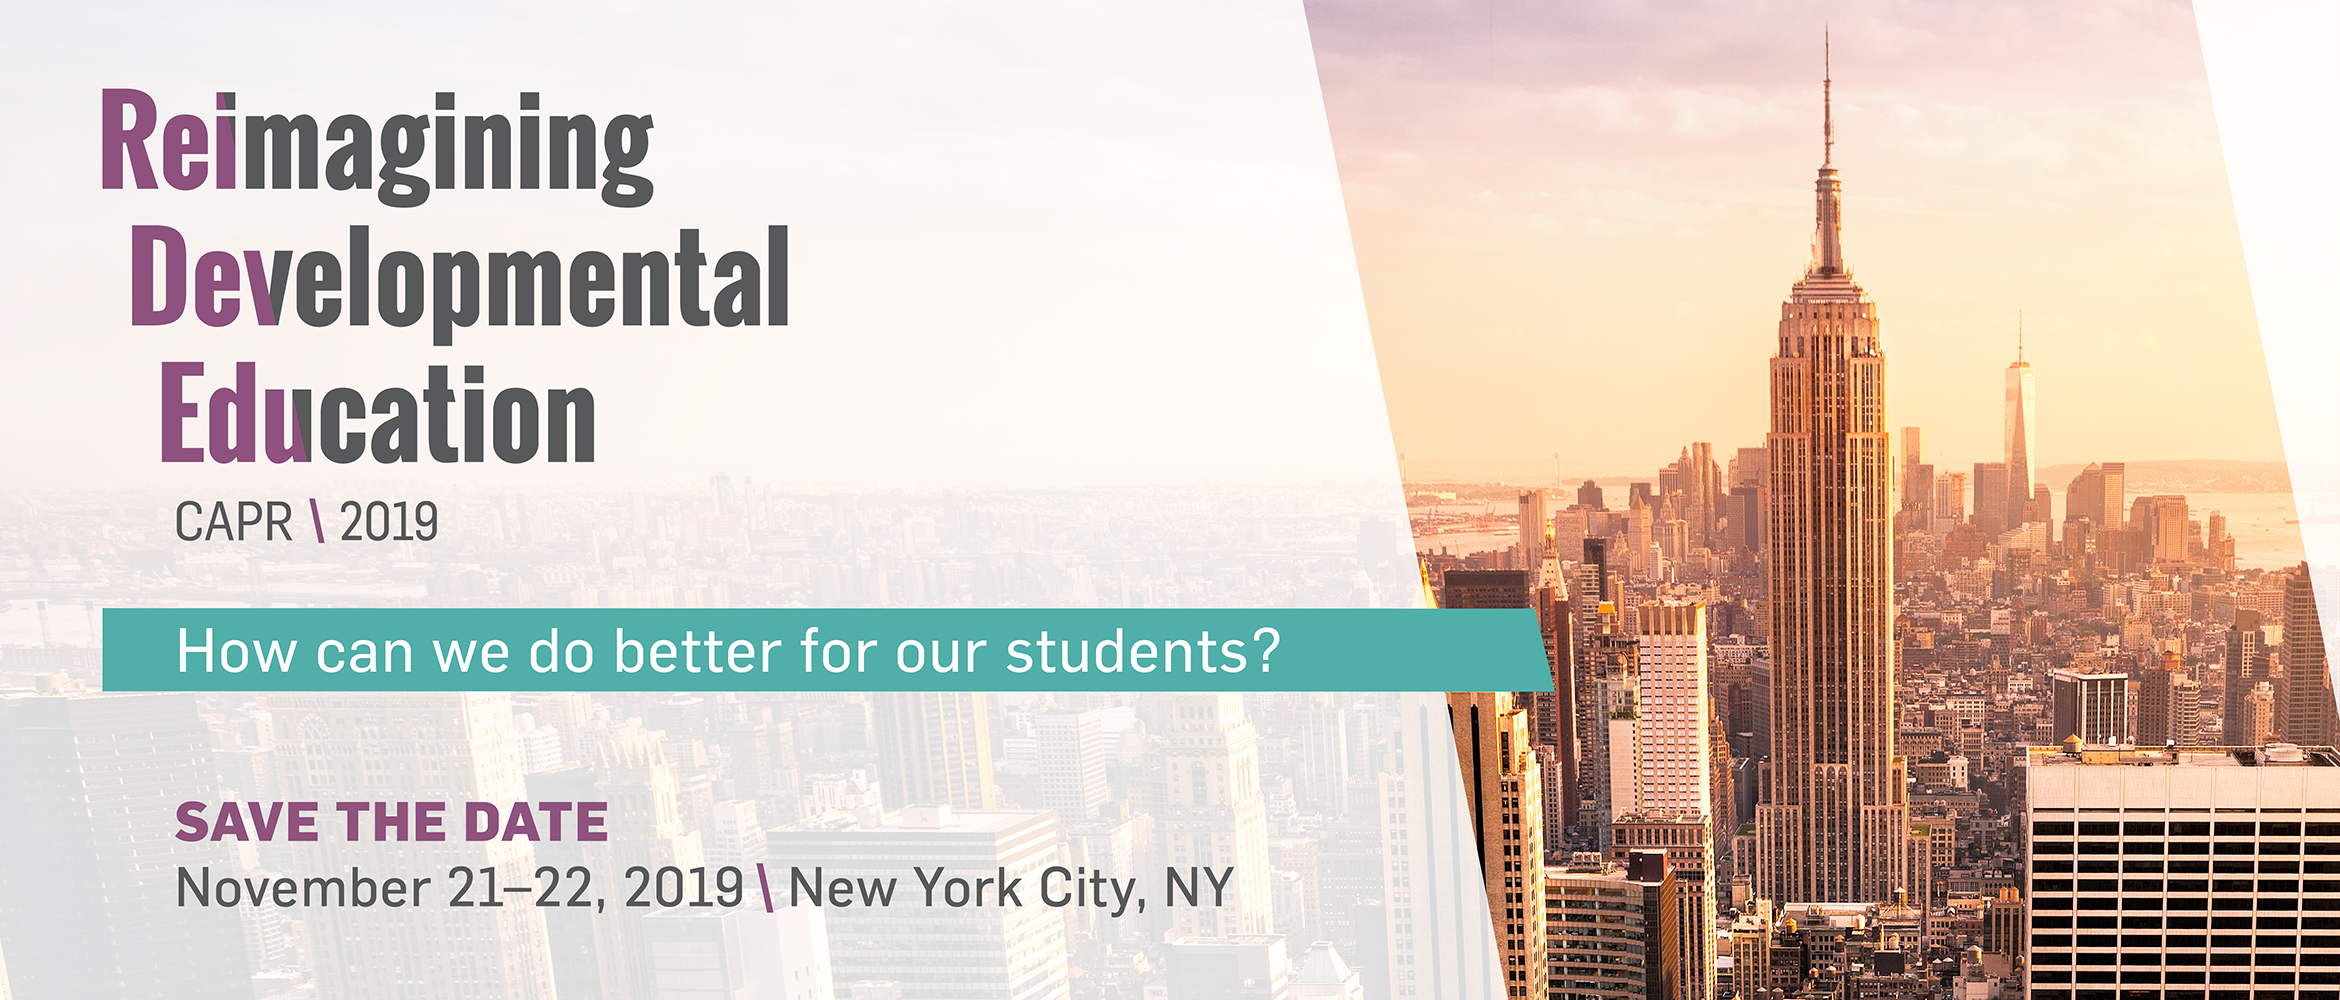 Reimagining Developmental Education: How can we do better for our students? November 21-22, 2019 | New York City, NY